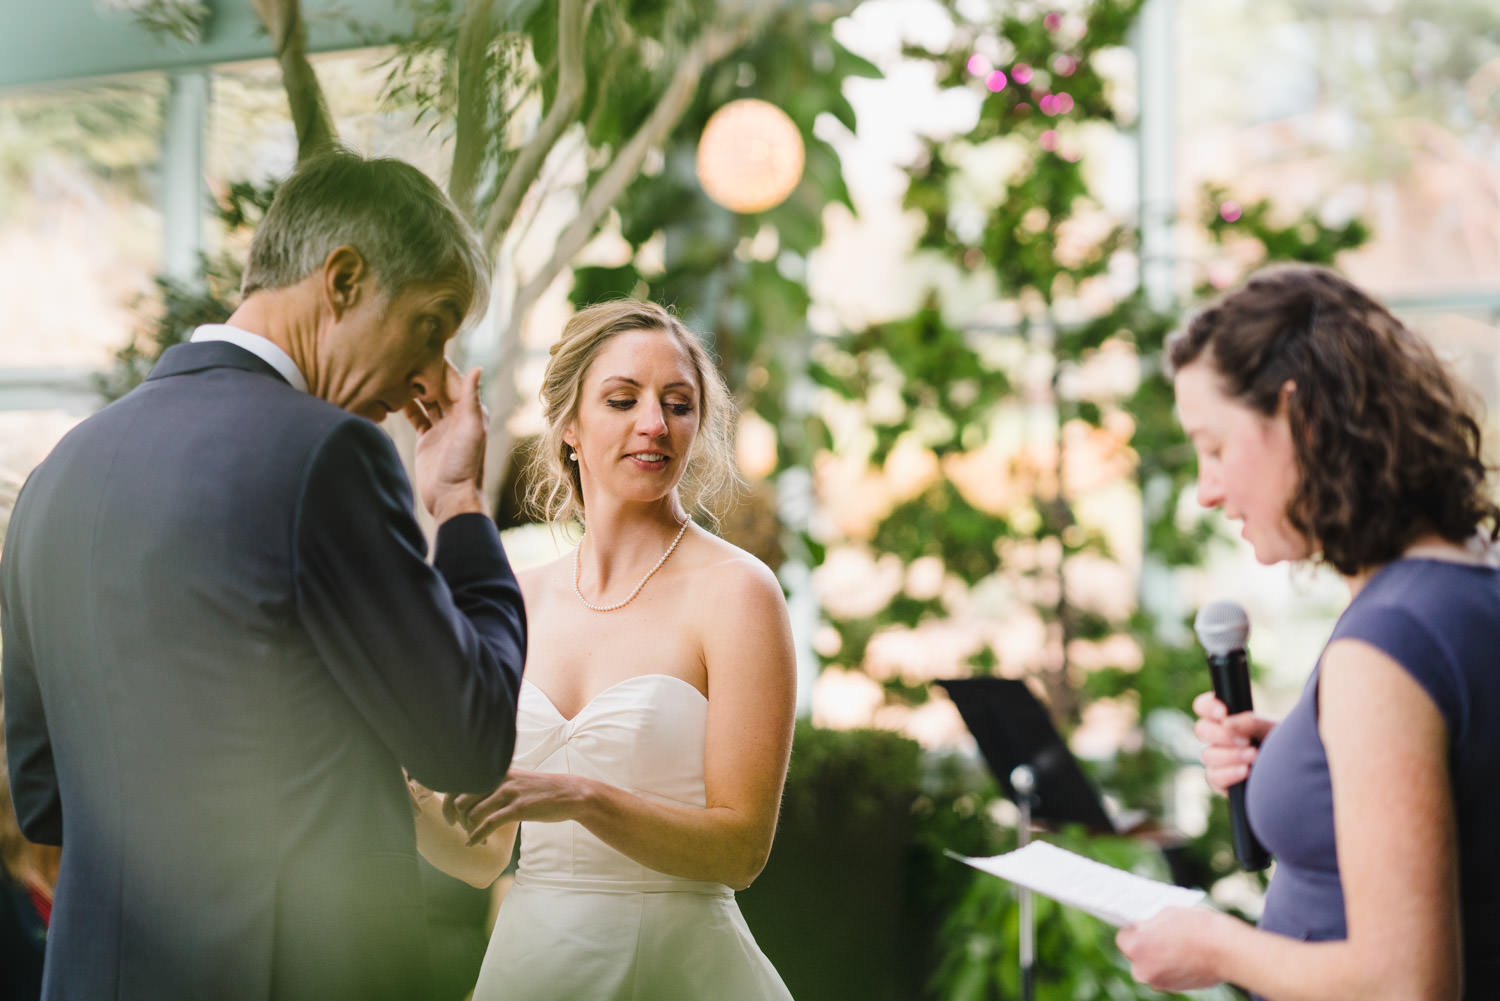 Red Butte Garden wedding intimate moment during ceremony photo